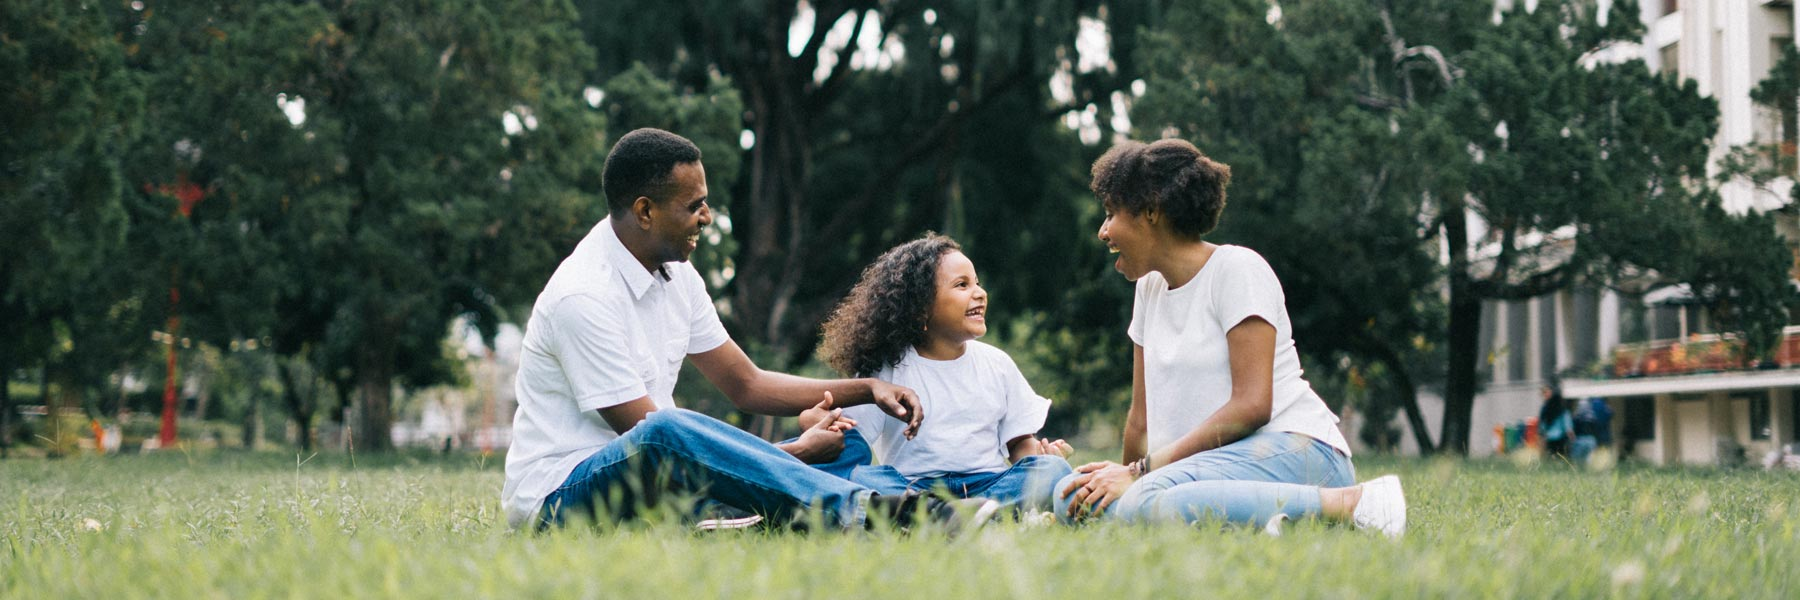 family of mom, dad and young daughter sitting on grass laughing